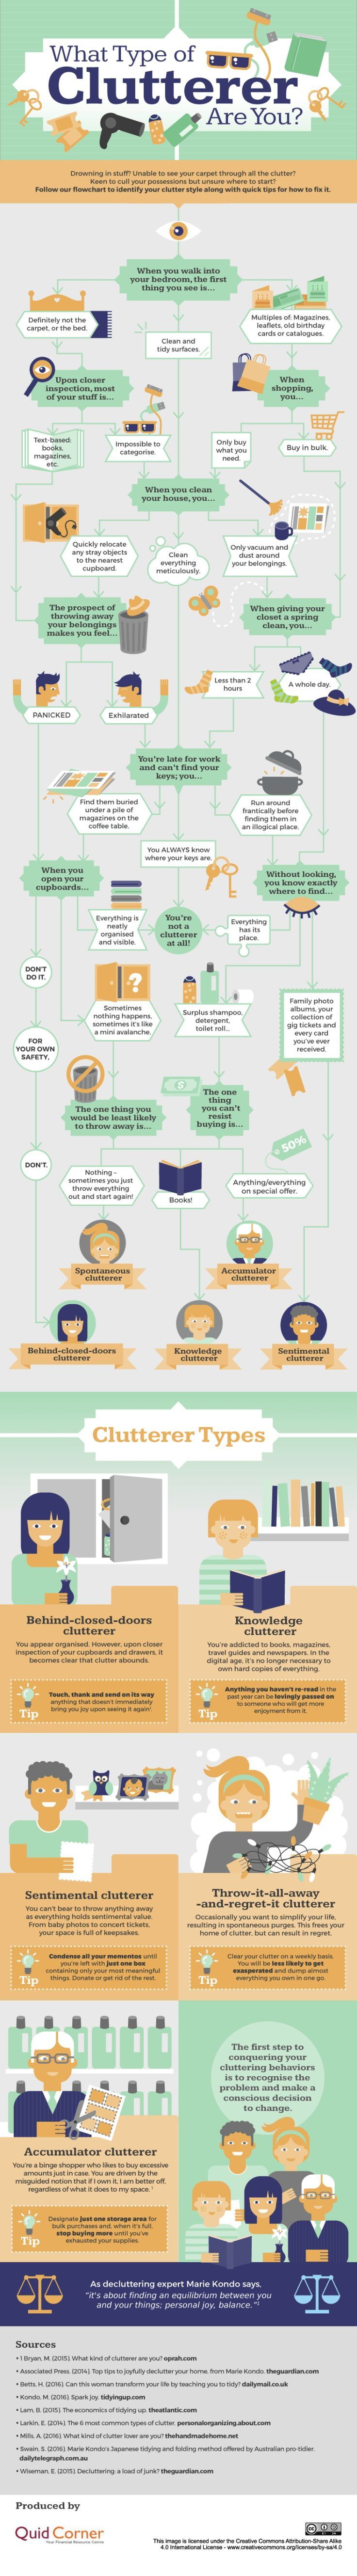 Are there times when you realize clutter has taken over and you clutter problem?…